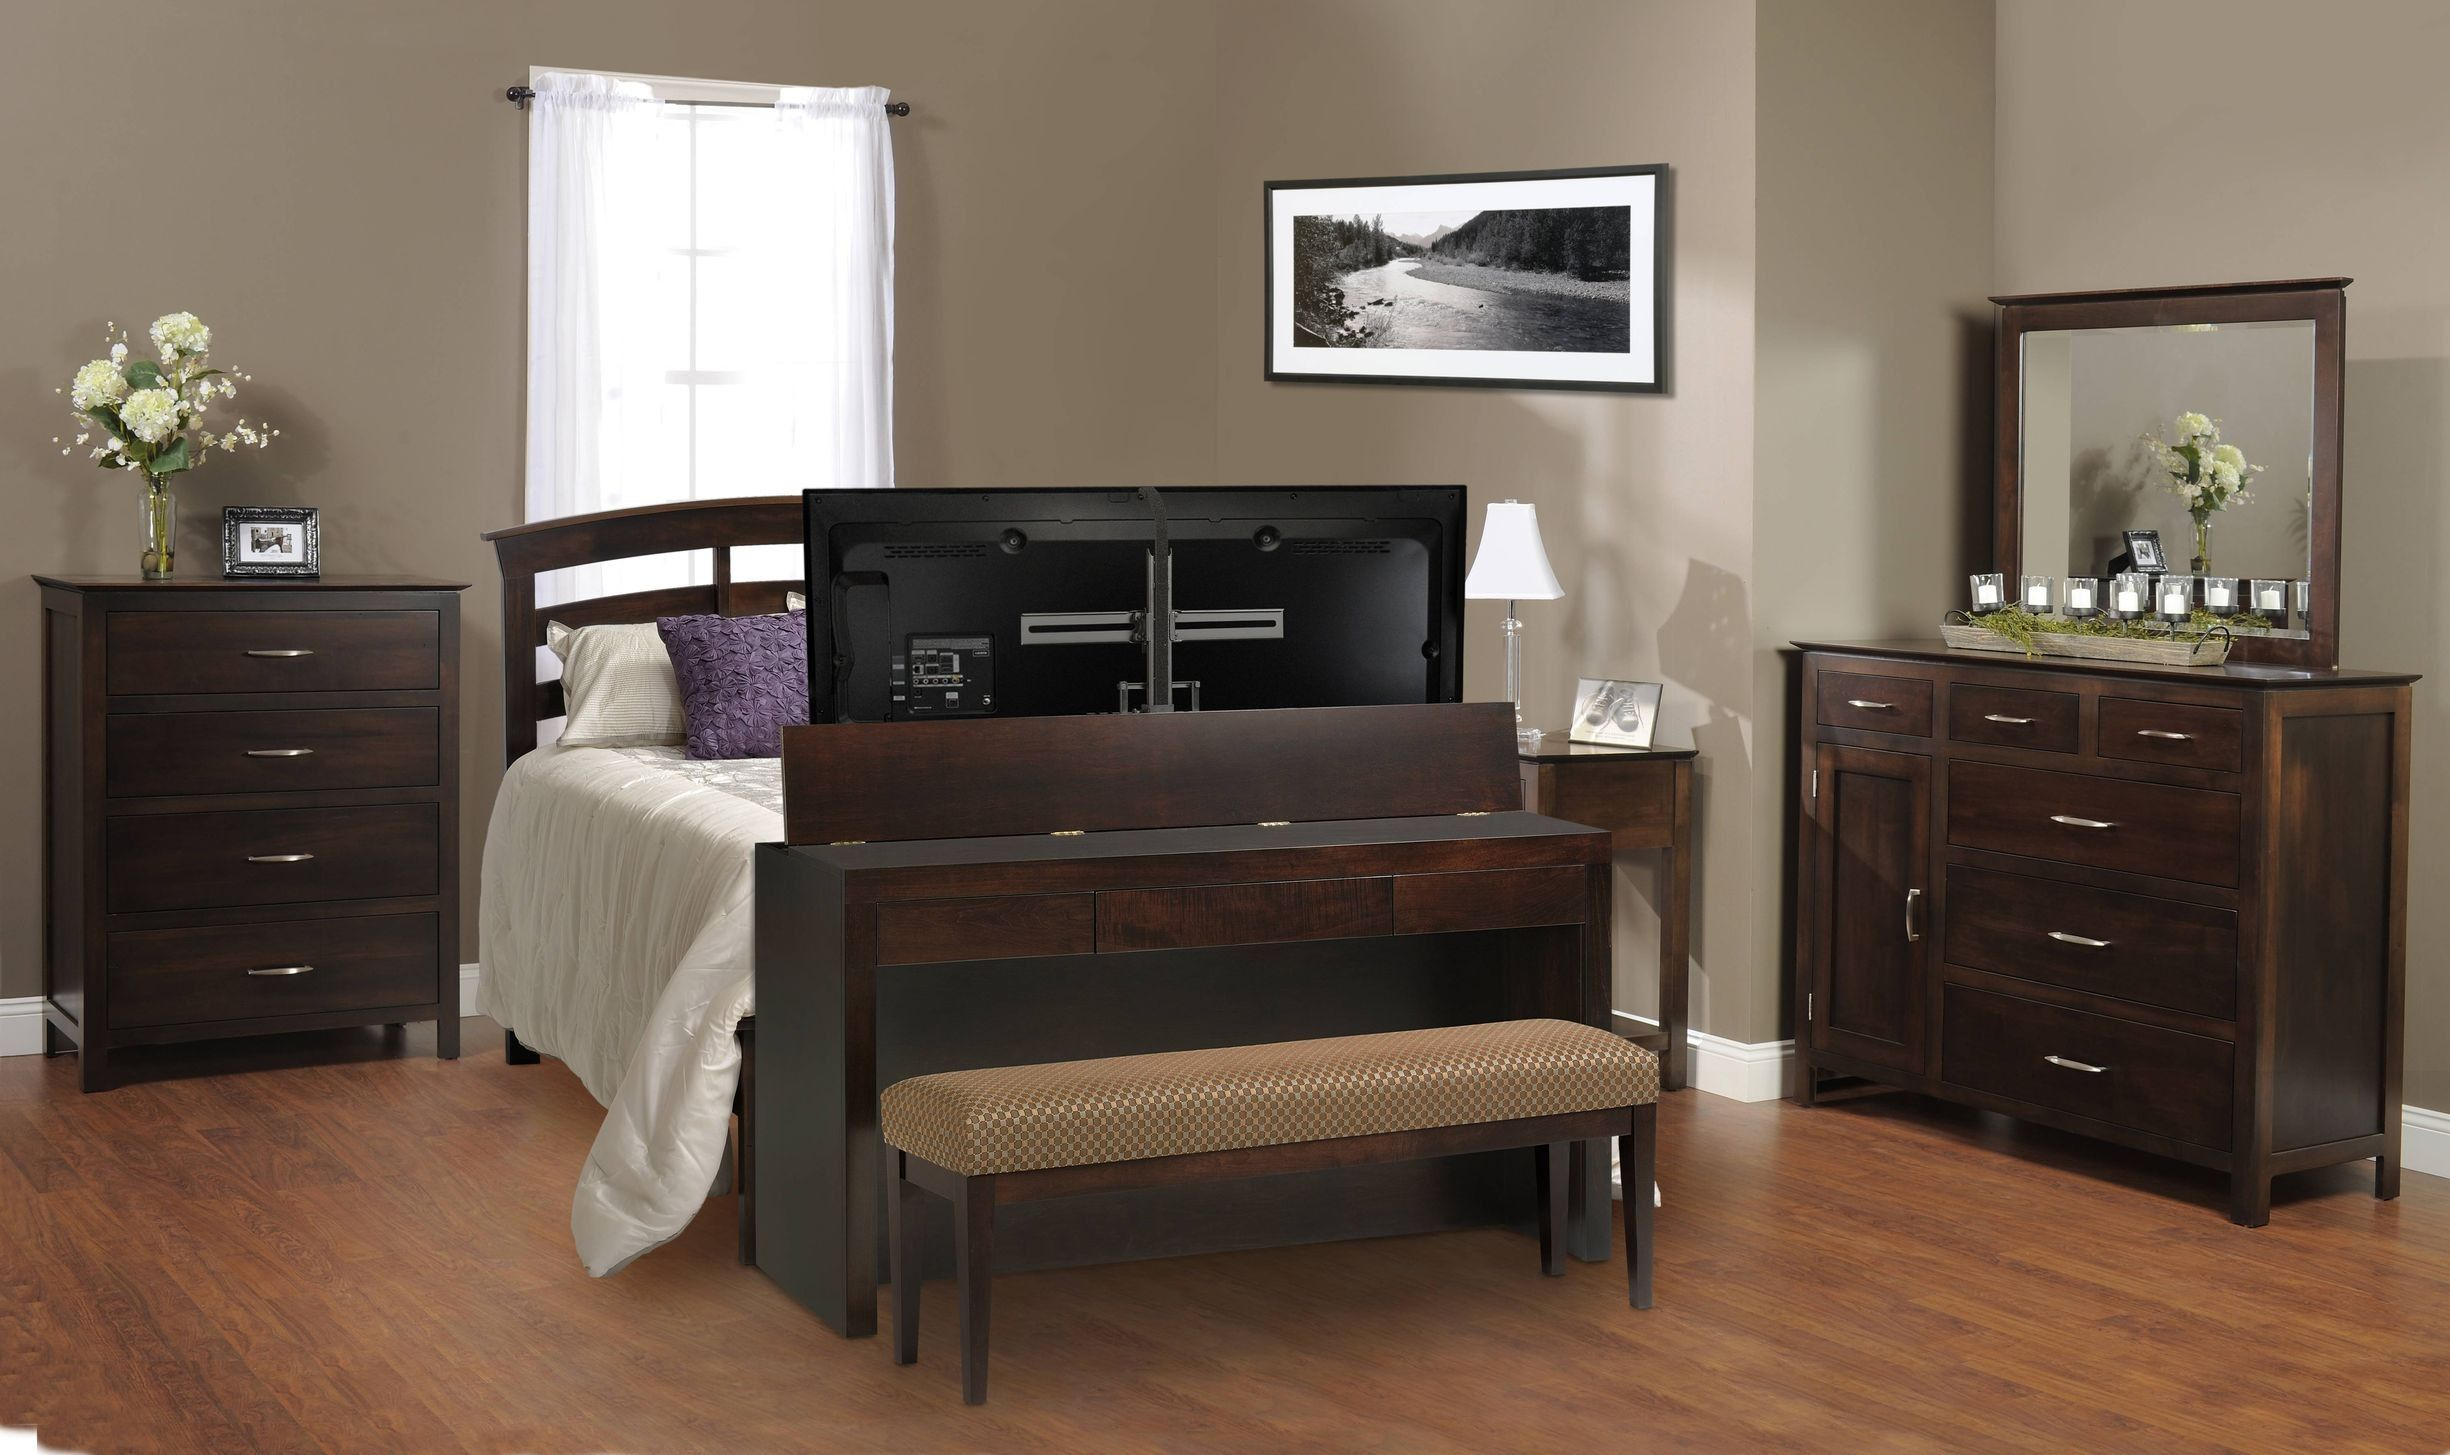 Queen Foot Board Desk Tv Lift W Bench Multi Functional Hides And Has A Storage Drawer Tvliftcabinet